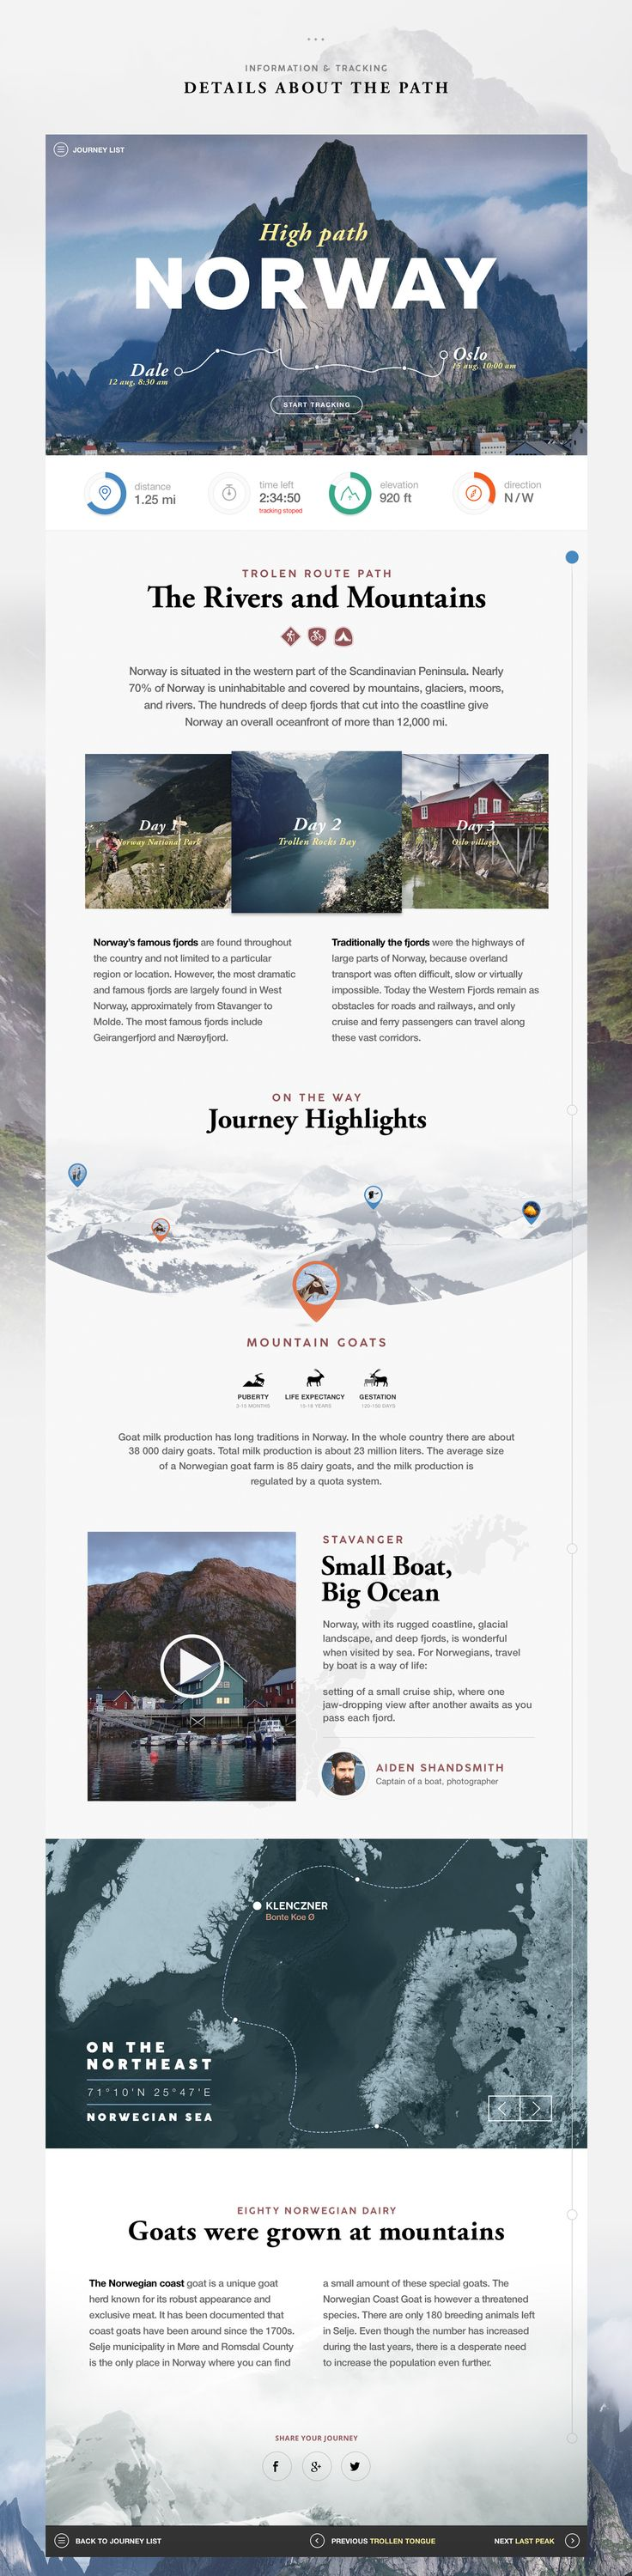 Travel App - Website Design